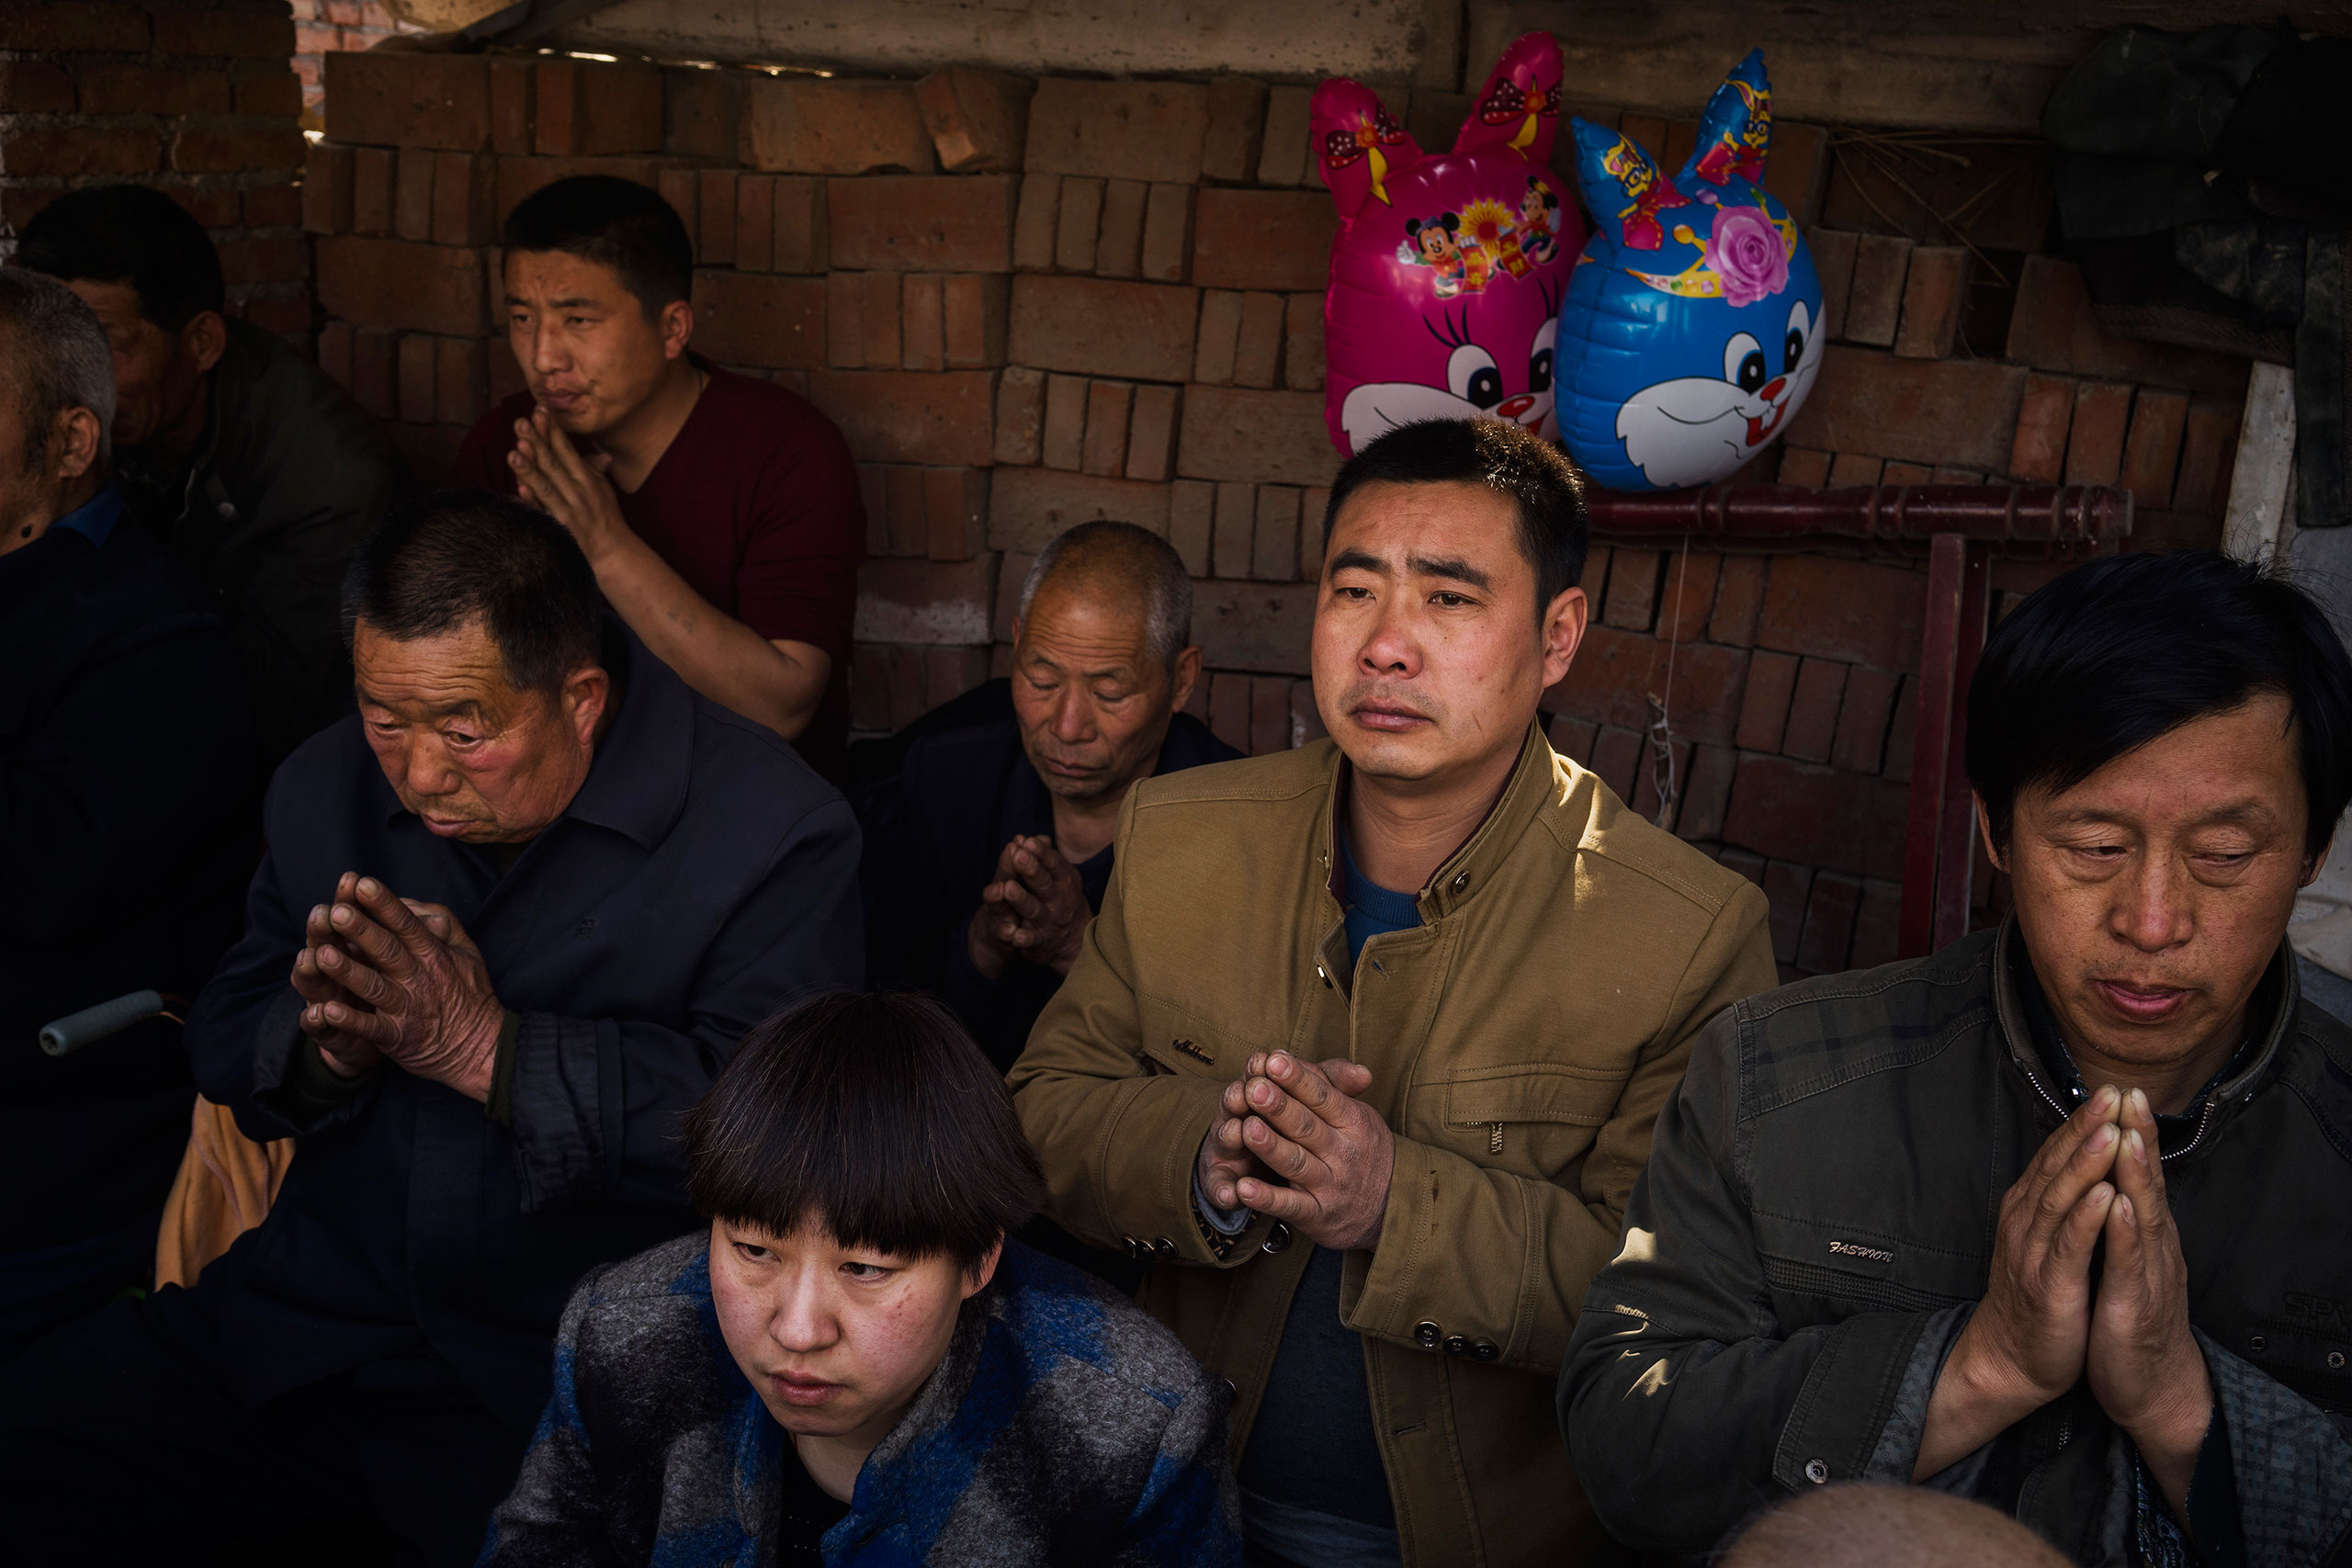 Villagers pray at an underground Easter Sunday Mass led by dissident Catholic Priest Dong Baolu in the yard of his house in Youtong village, Shijiazhuang, China, March 27, 2016.